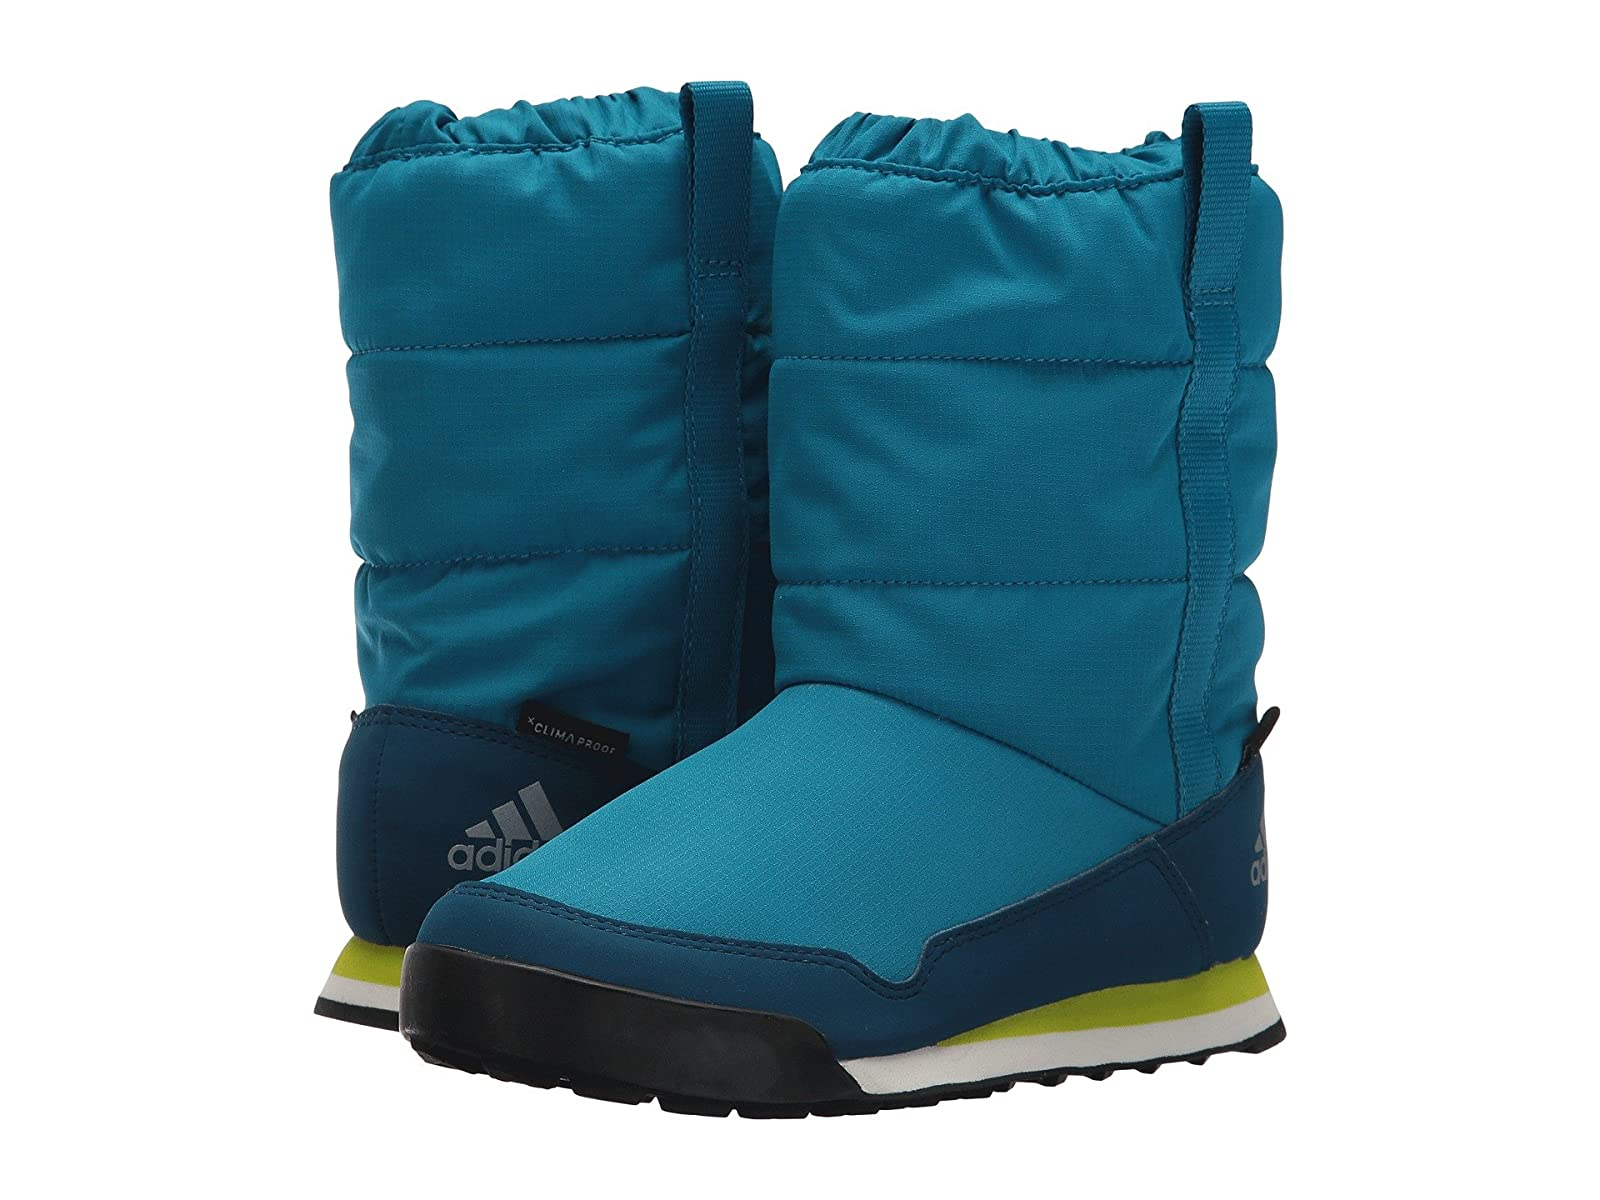 adidas Outdoor Kids CW Snowpitch Slip-On CP (Little Kid/Big Kid)Stylish and characteristic shoes